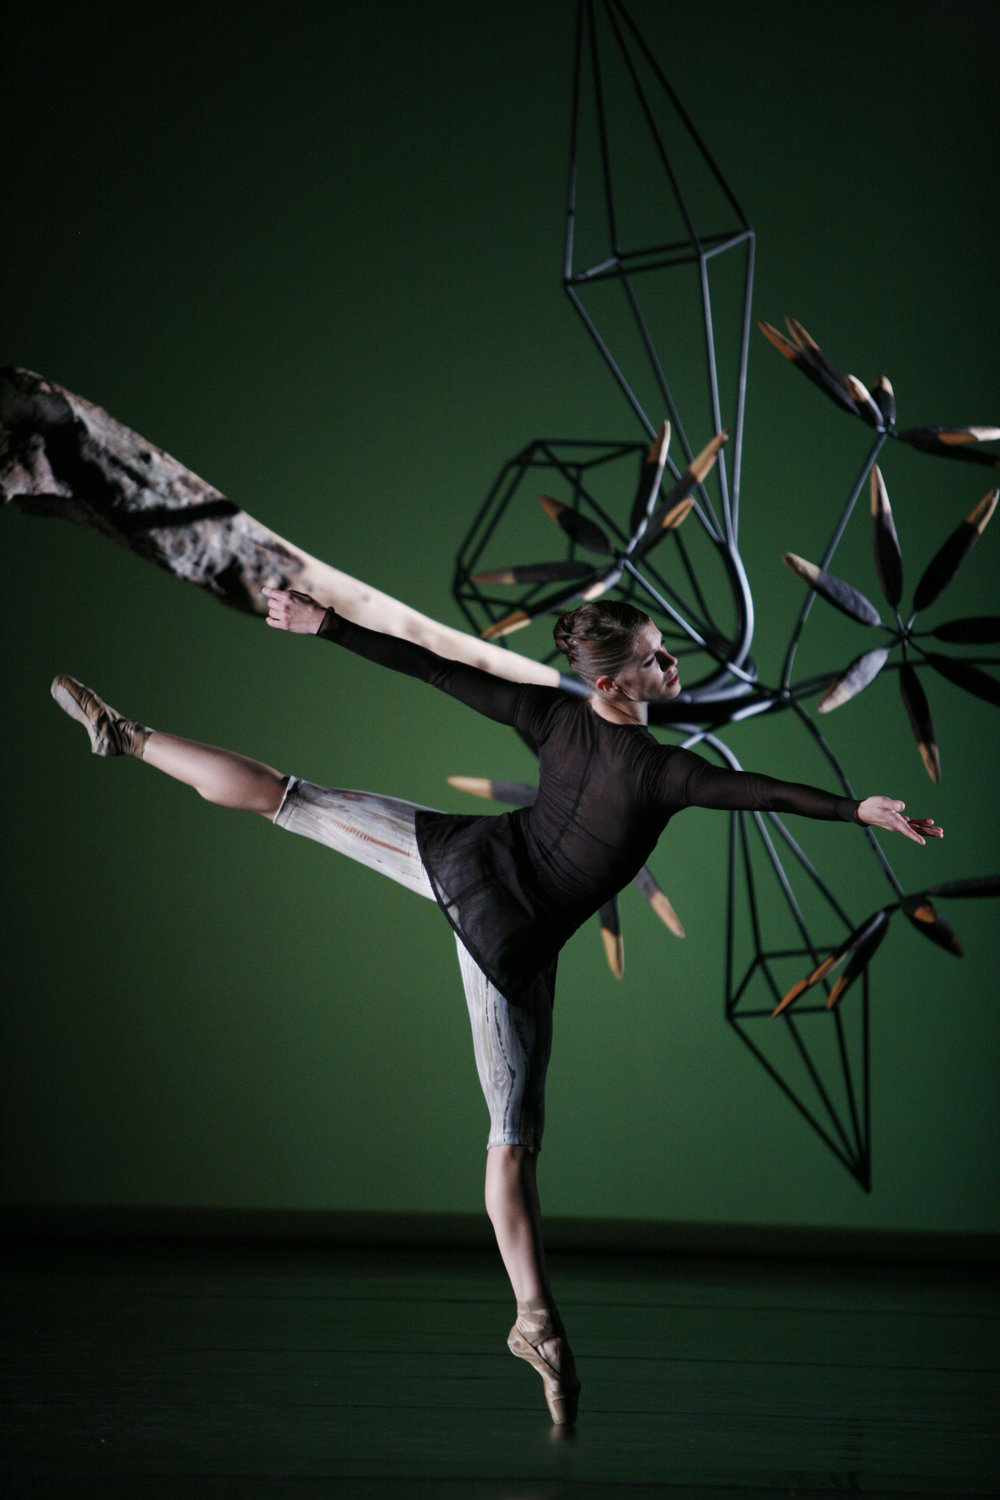 Aspen_SantaFe_Ballet_James_Surls_1.jpg